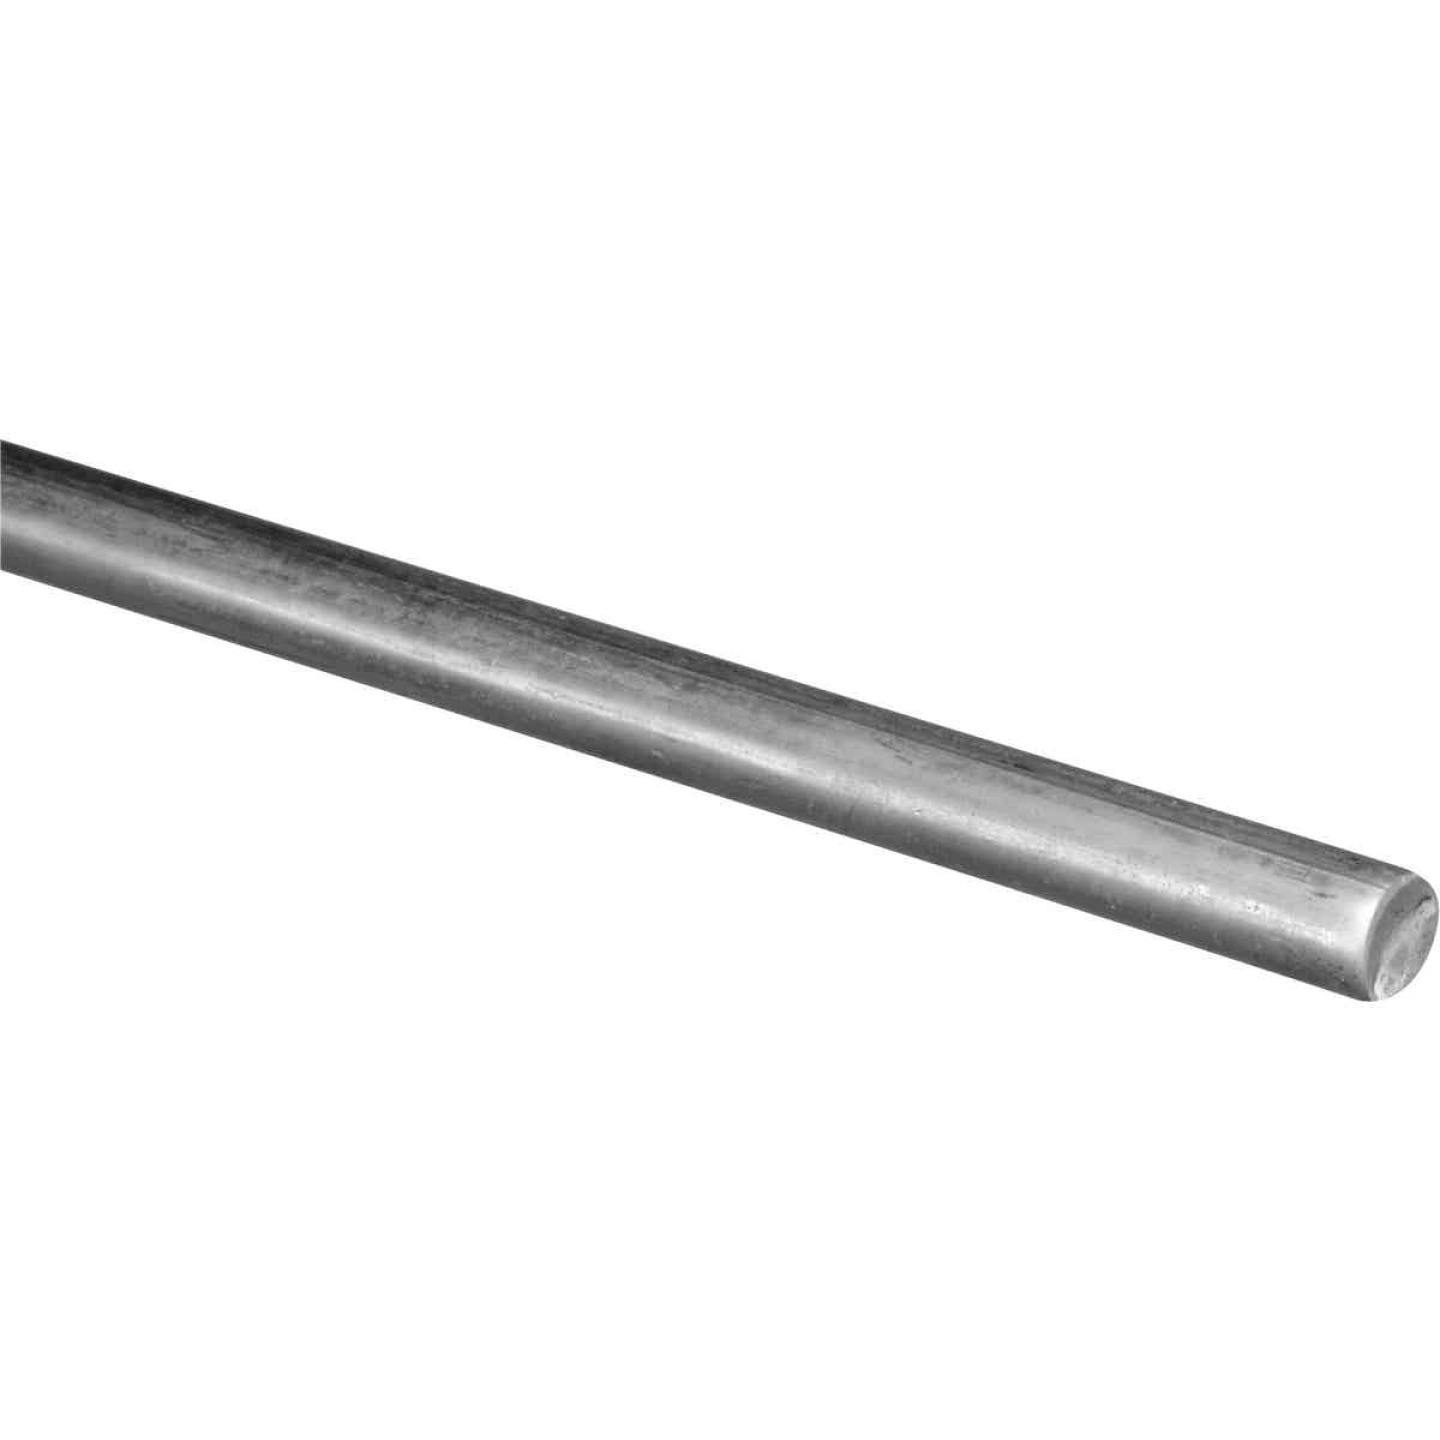 Hillman Steelworks Steel 3/16 In. X 6 Ft. Solid Rod Image 1